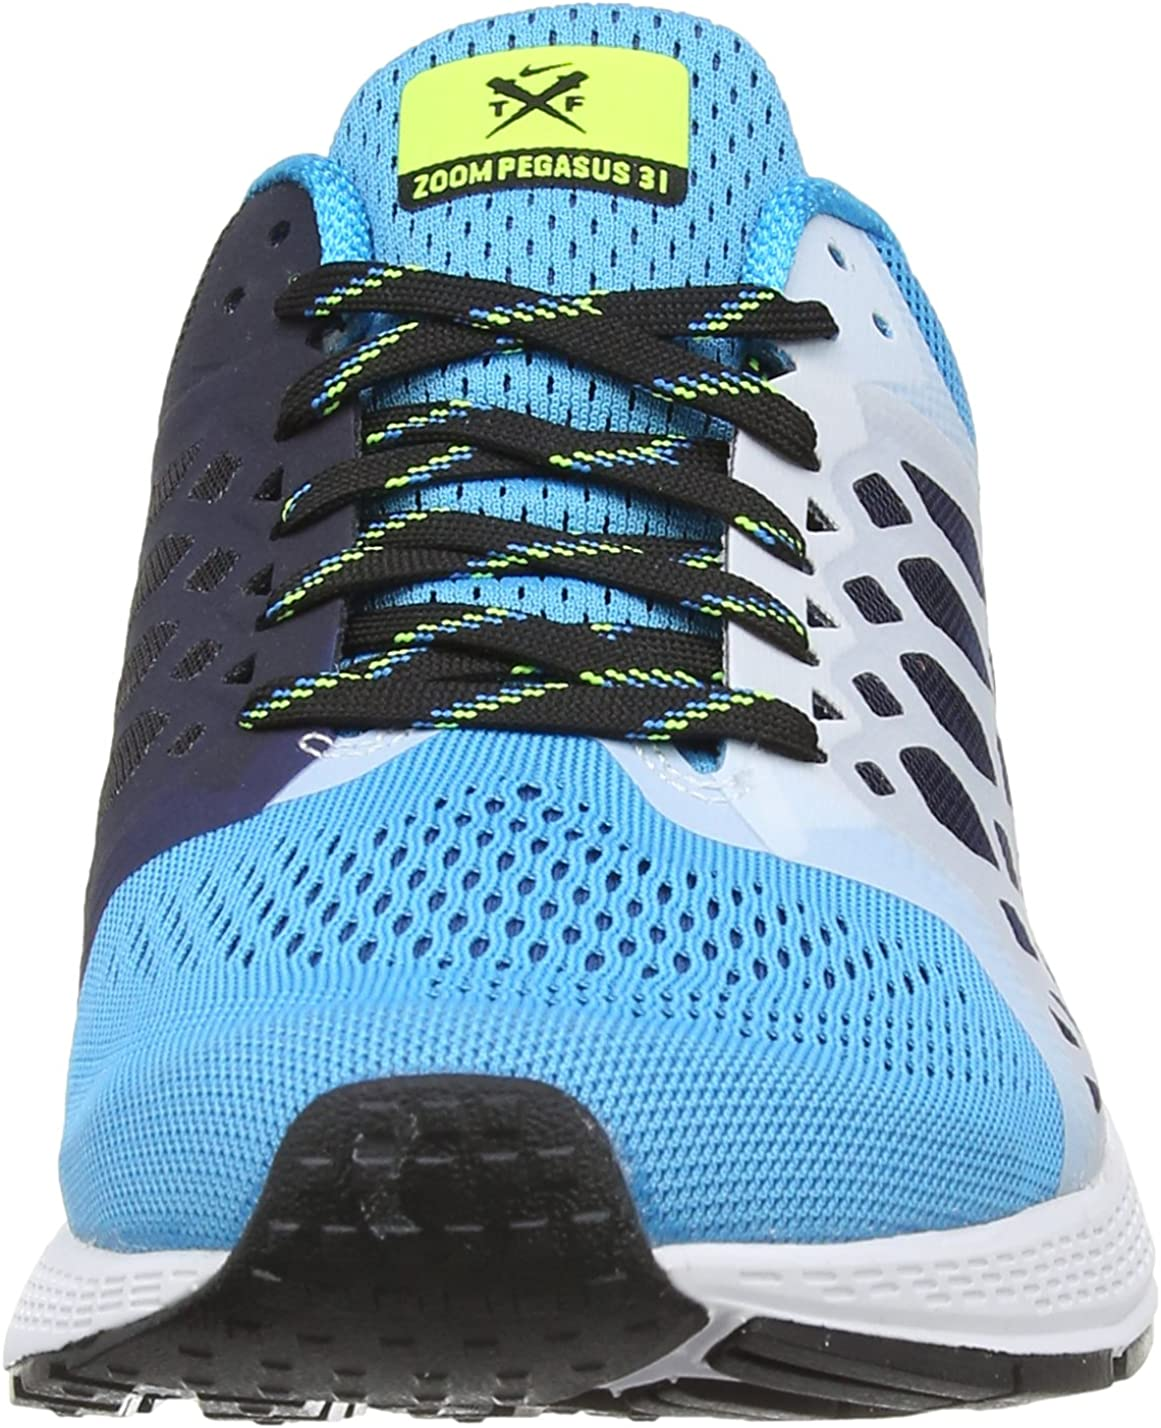 Nike Air Zoom Pegasus 31 - Zapatos para Hombre, Color Blue, Talla 40: Amazon.es: Zapatos y complementos